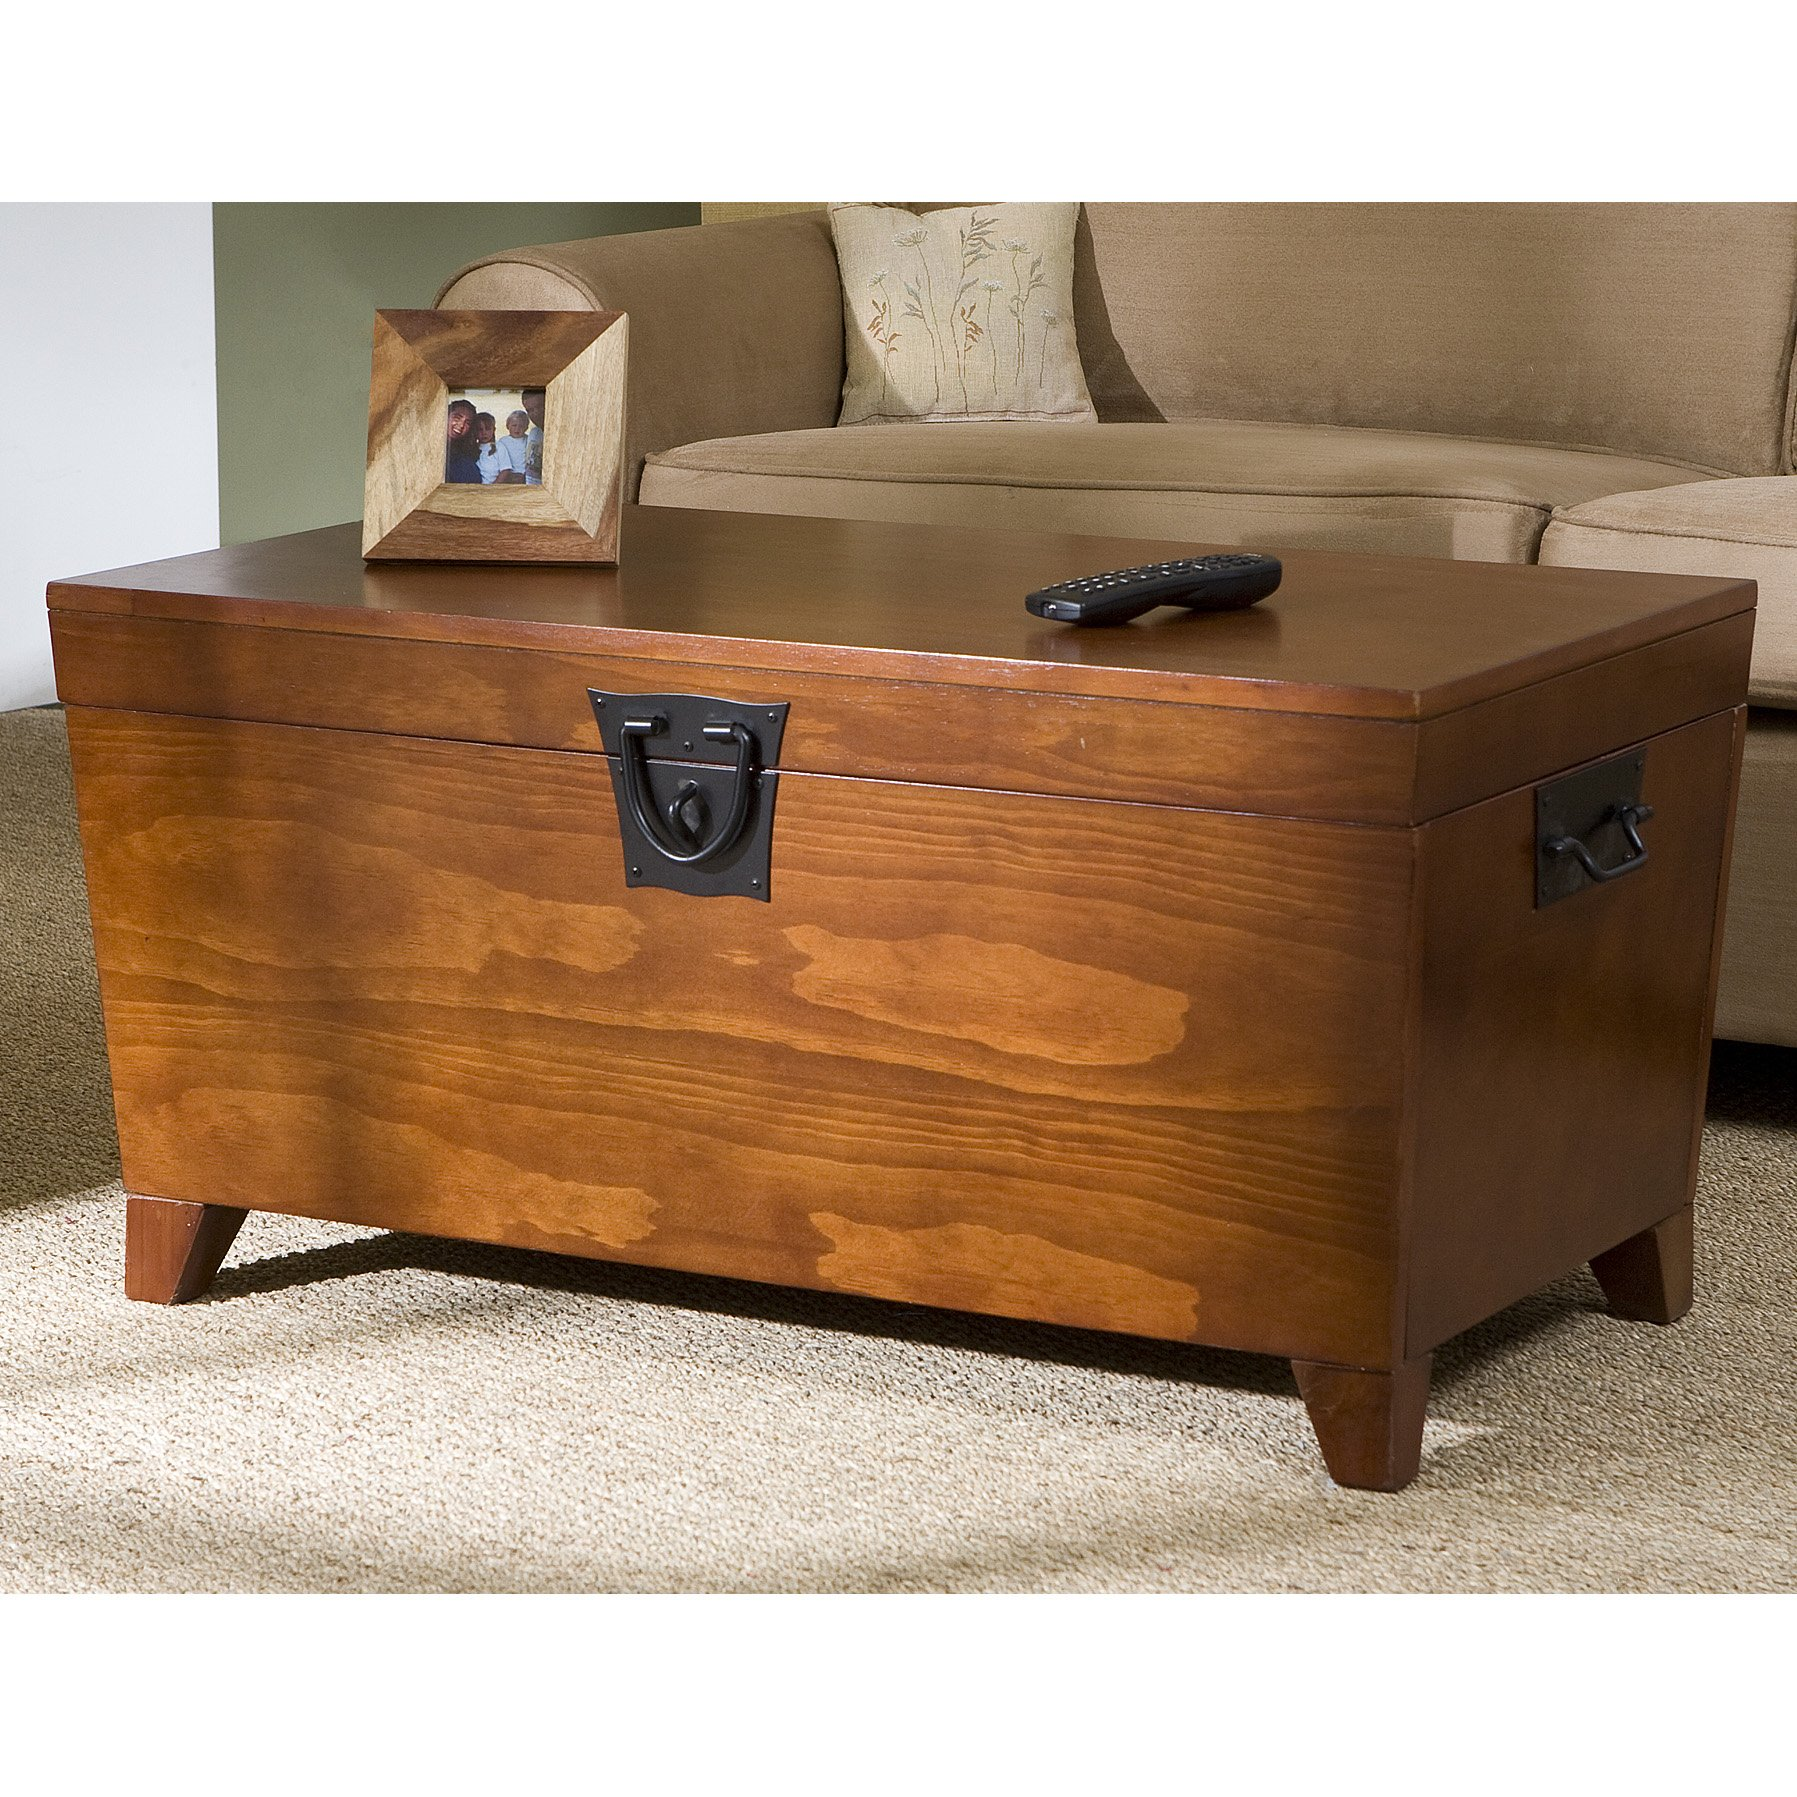 Holly & Martin Dorset Chest Coffee Table